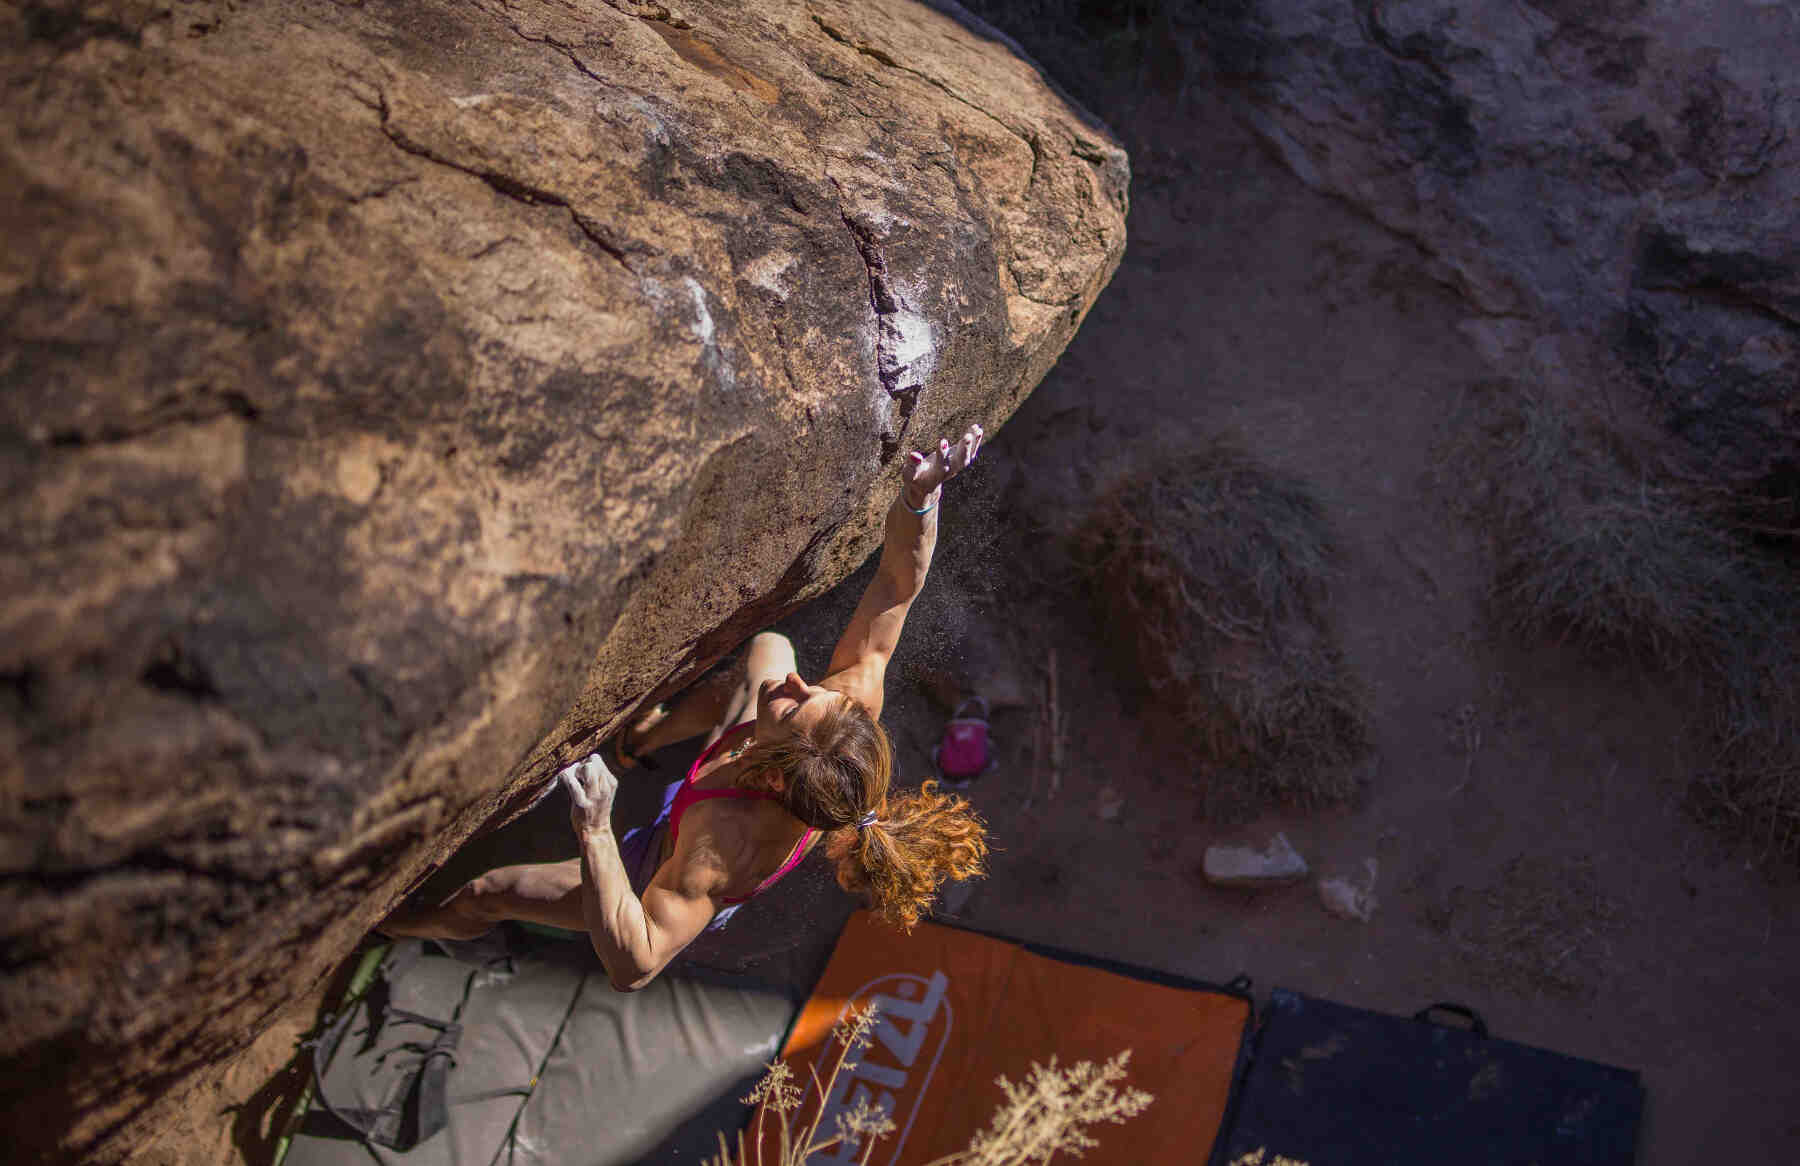 Alex Puccio - FrictionLabs Rock Climbing Chalk Pro Athlete